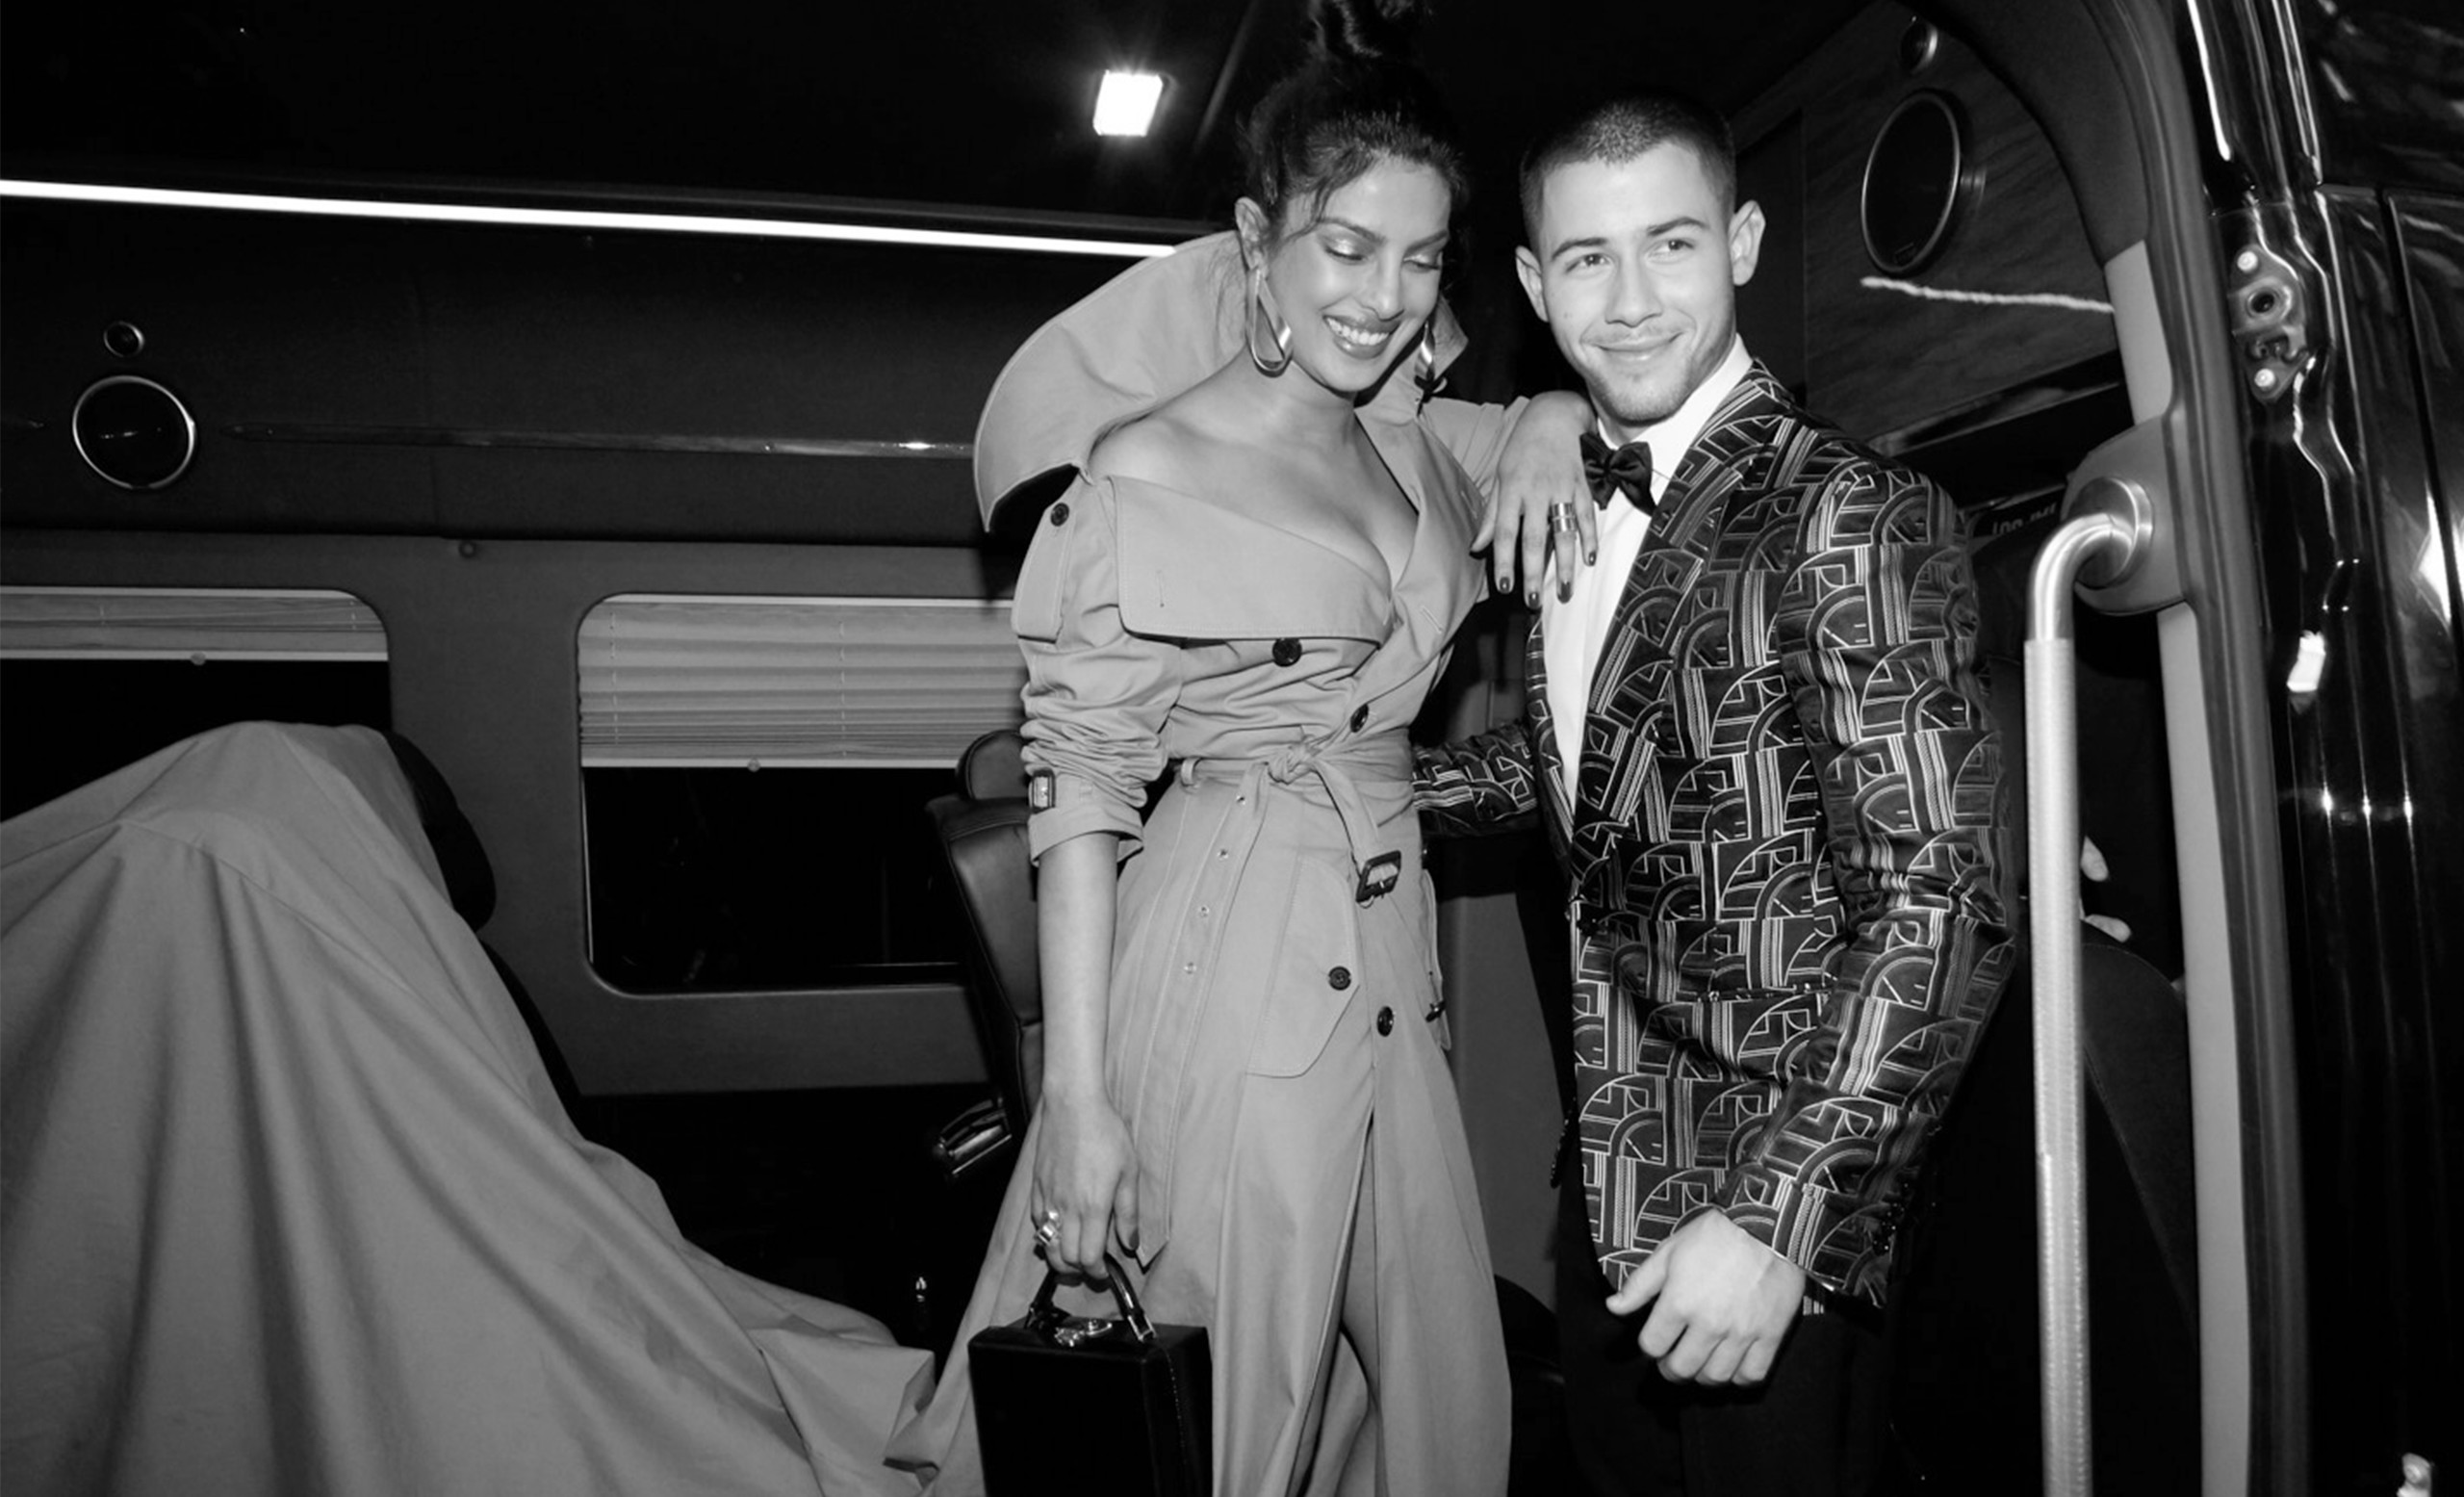 Priyanka and Nick shared the spotlight for the first time as guests of Ralph Lauren at the Met Gala in May 2017—just a week after their first date and a few months of flirtatious texting